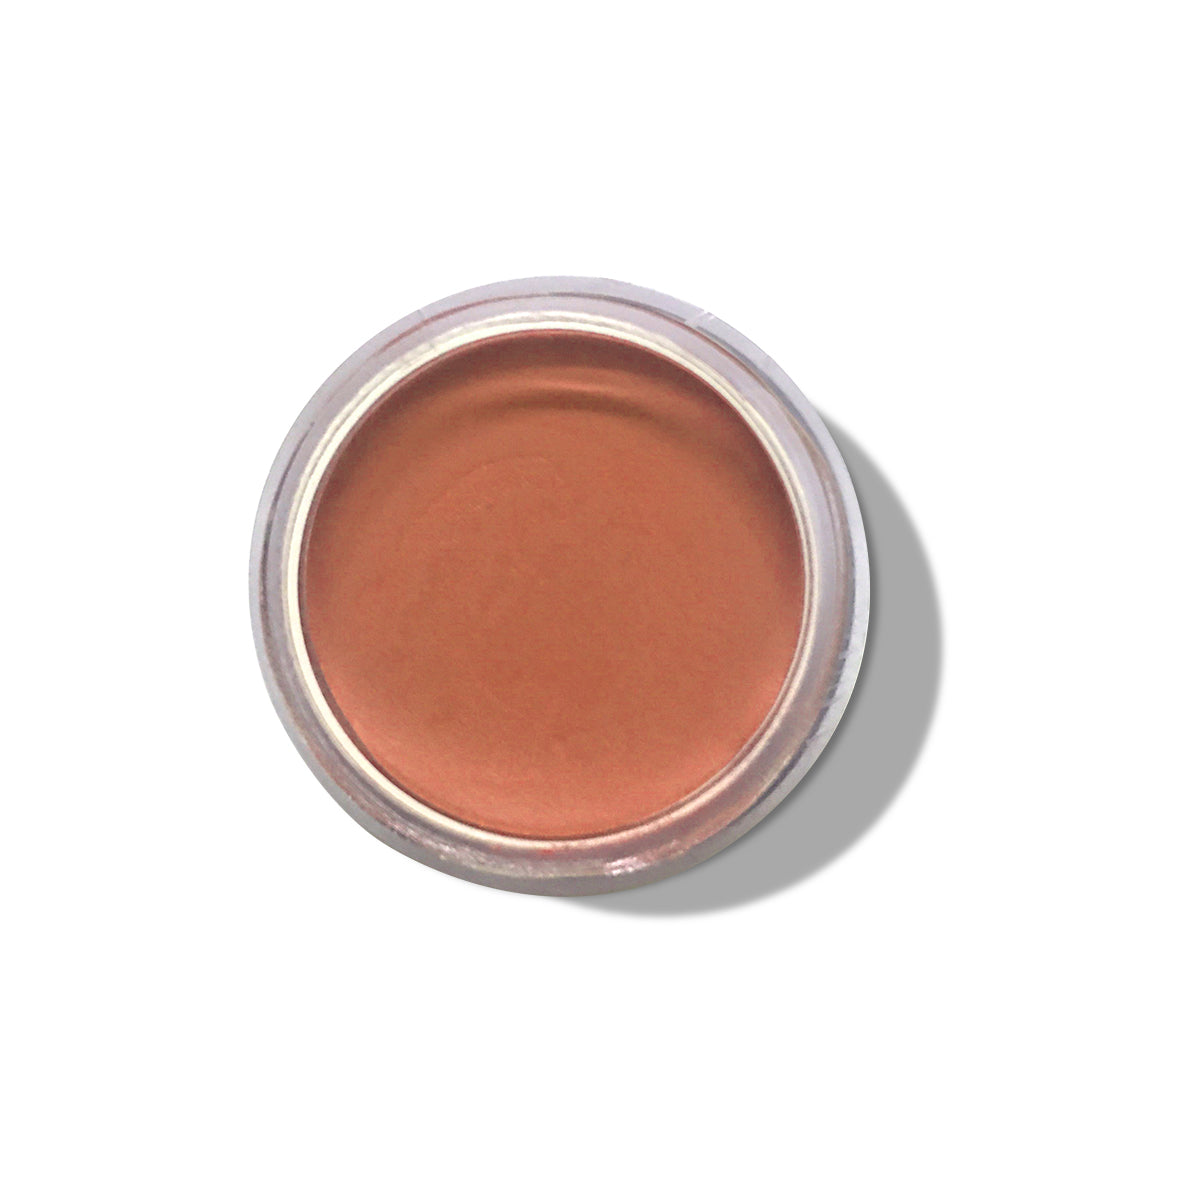 Coffee Nude Lip & Cheek Tint | 100% Vegan | Safe Pigments